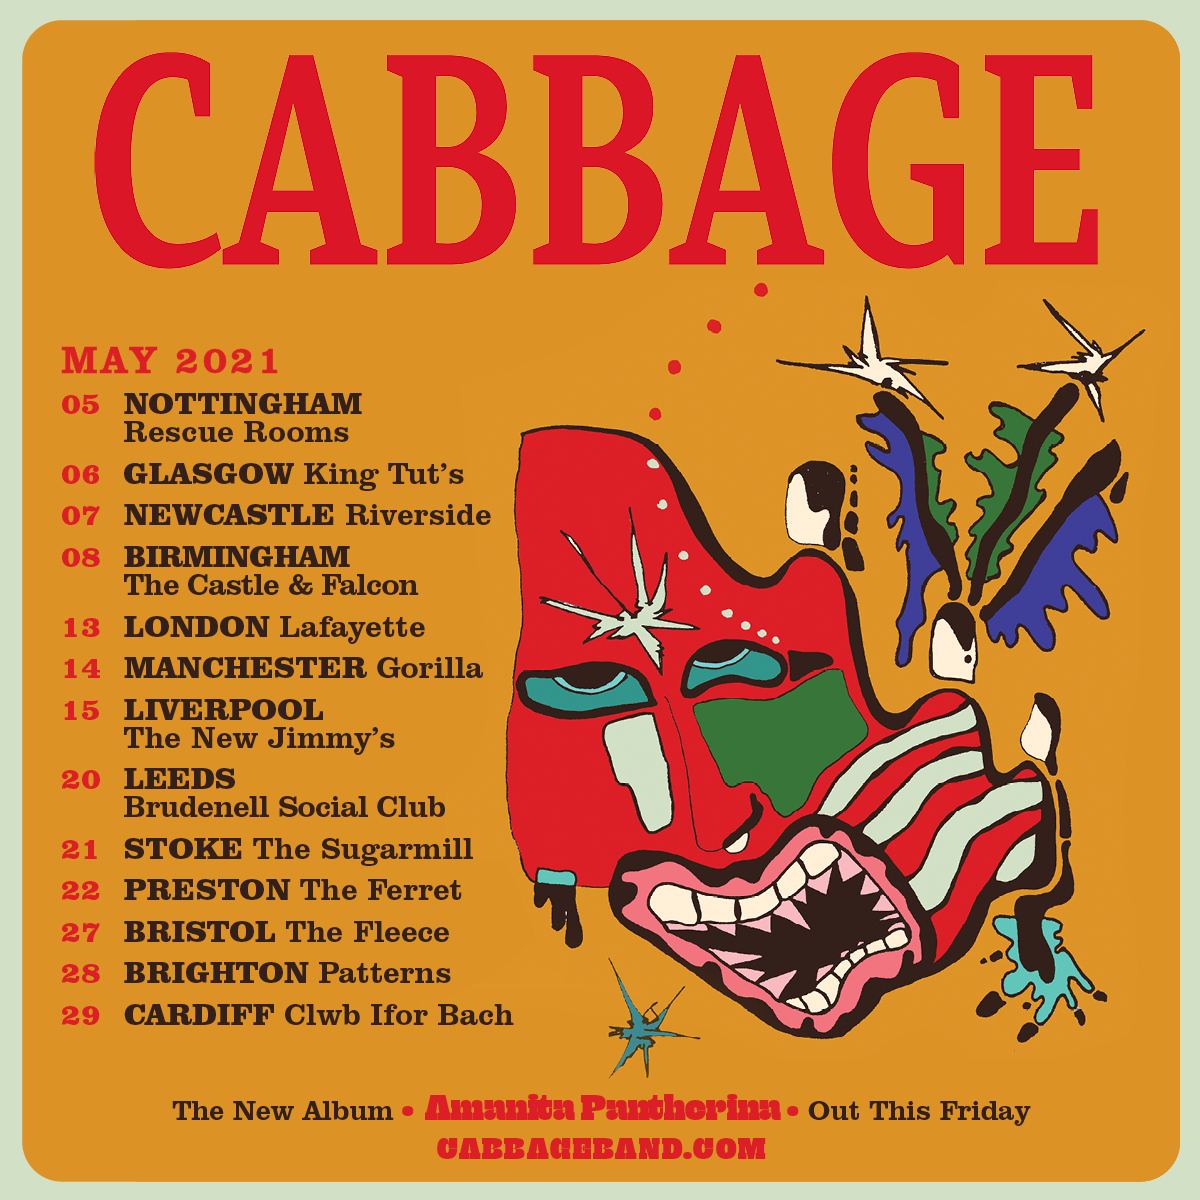 English post punk rock band Cabbage (@ahcabbage) have announced that they will tour the UK in May 2021 & release a new album this Friday. See them in #Nottingham #Glasgow #Newcastle #Birmingham & more  🔗https://t.co/uExvq5D5nY (25th Sep) https://t.co/cuTqFDrC7A